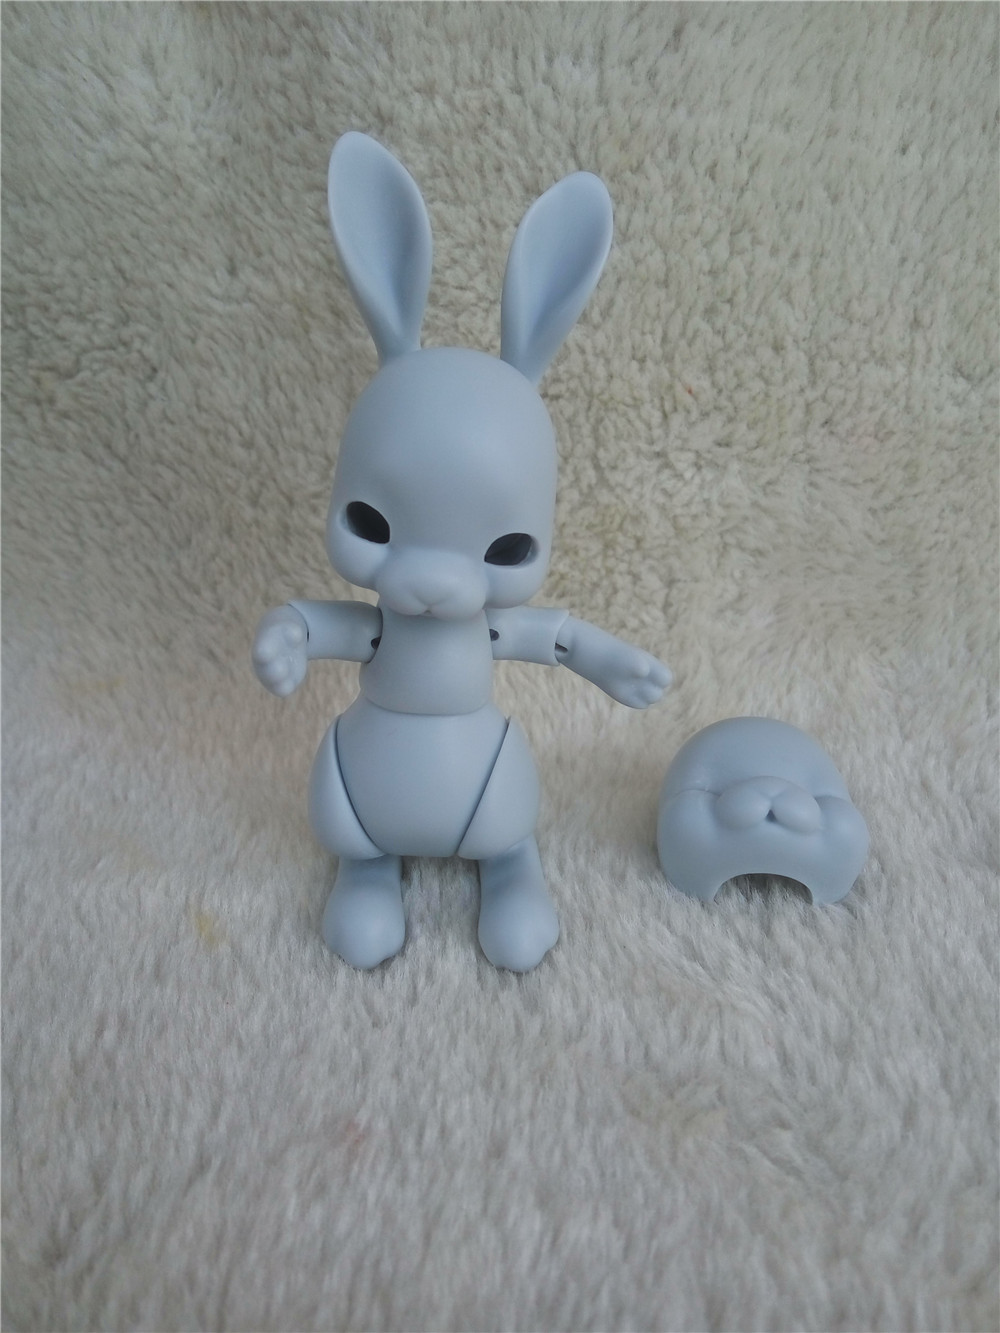 China doll toys Suppliers